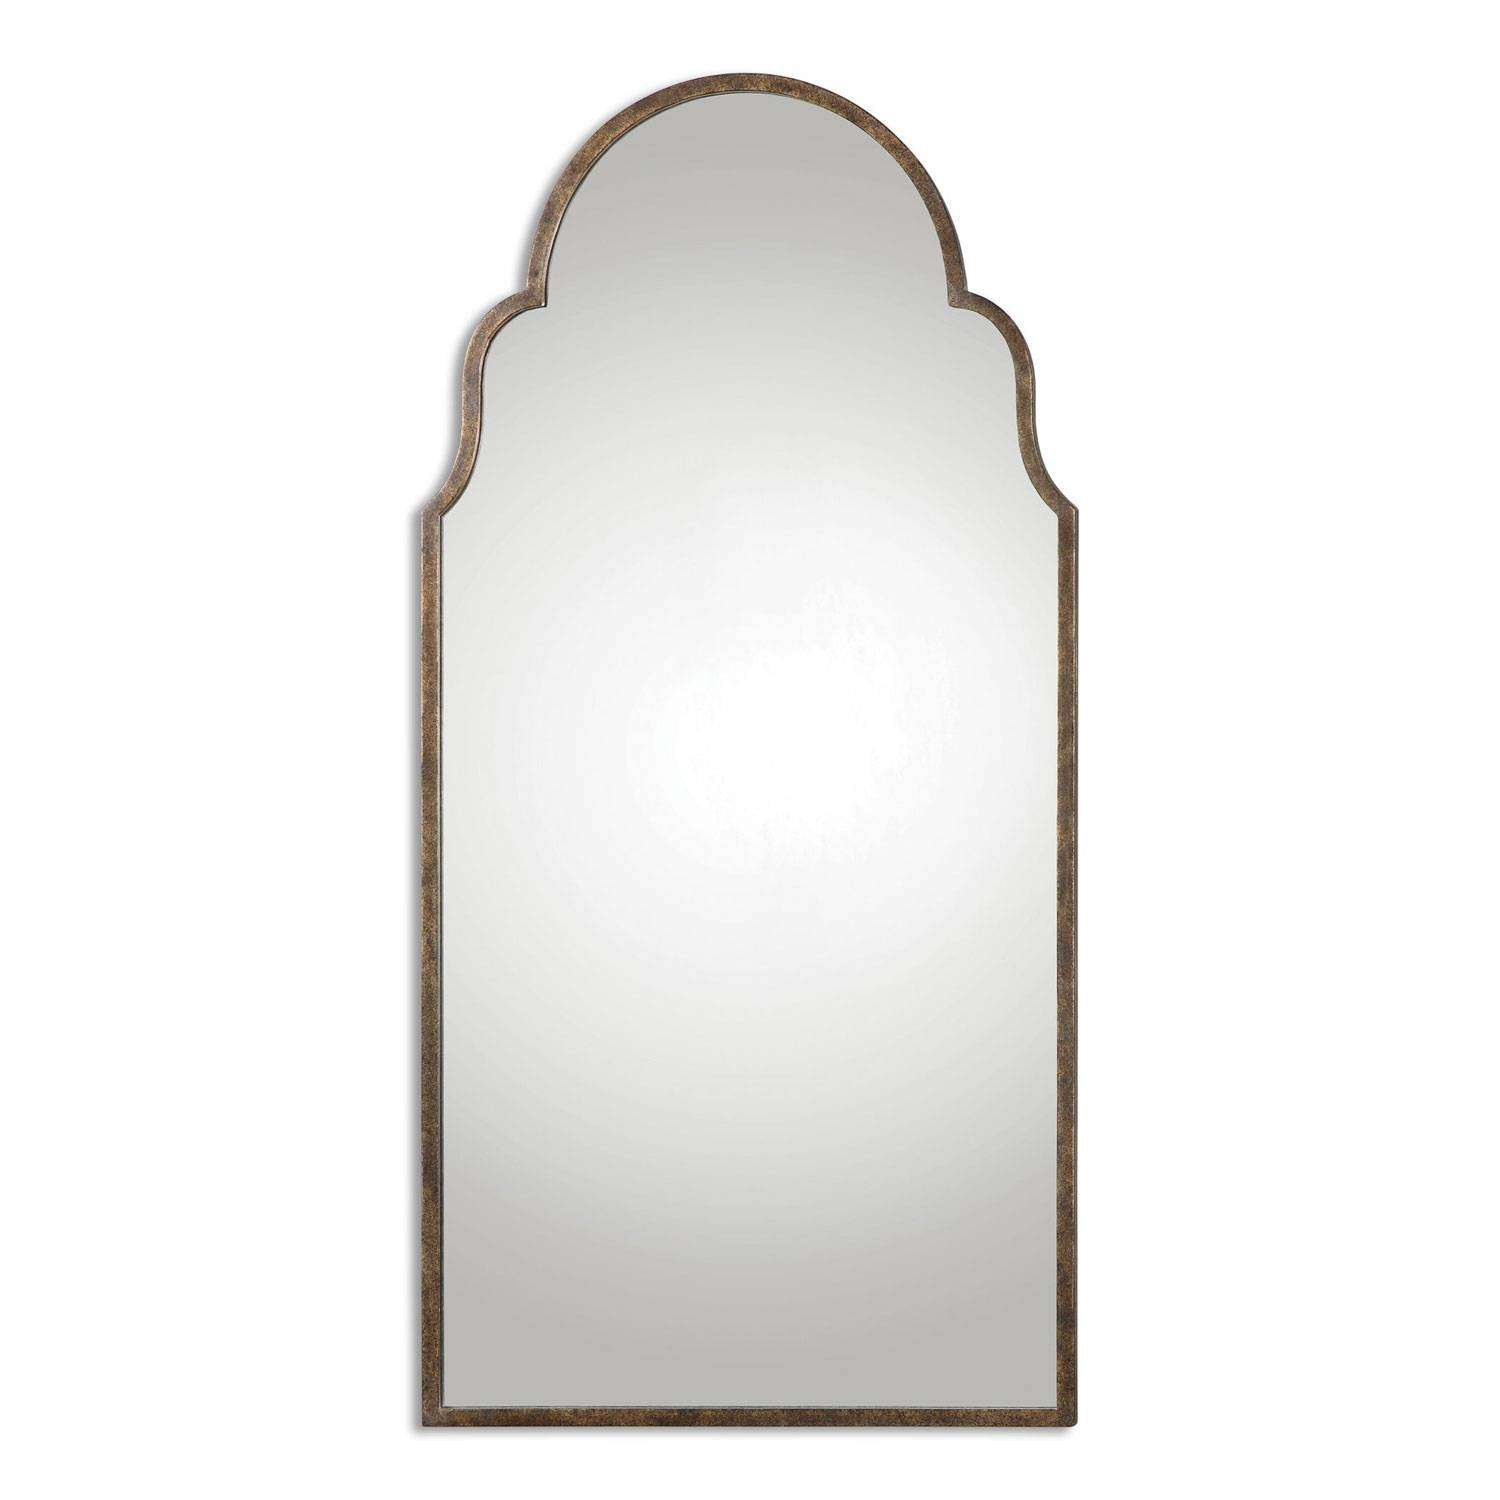 Brayden Rust Bronze Arch Mirror Uttermost Wall Mirror Mirrors Home within Curved Top Mirrors (Image 4 of 15)